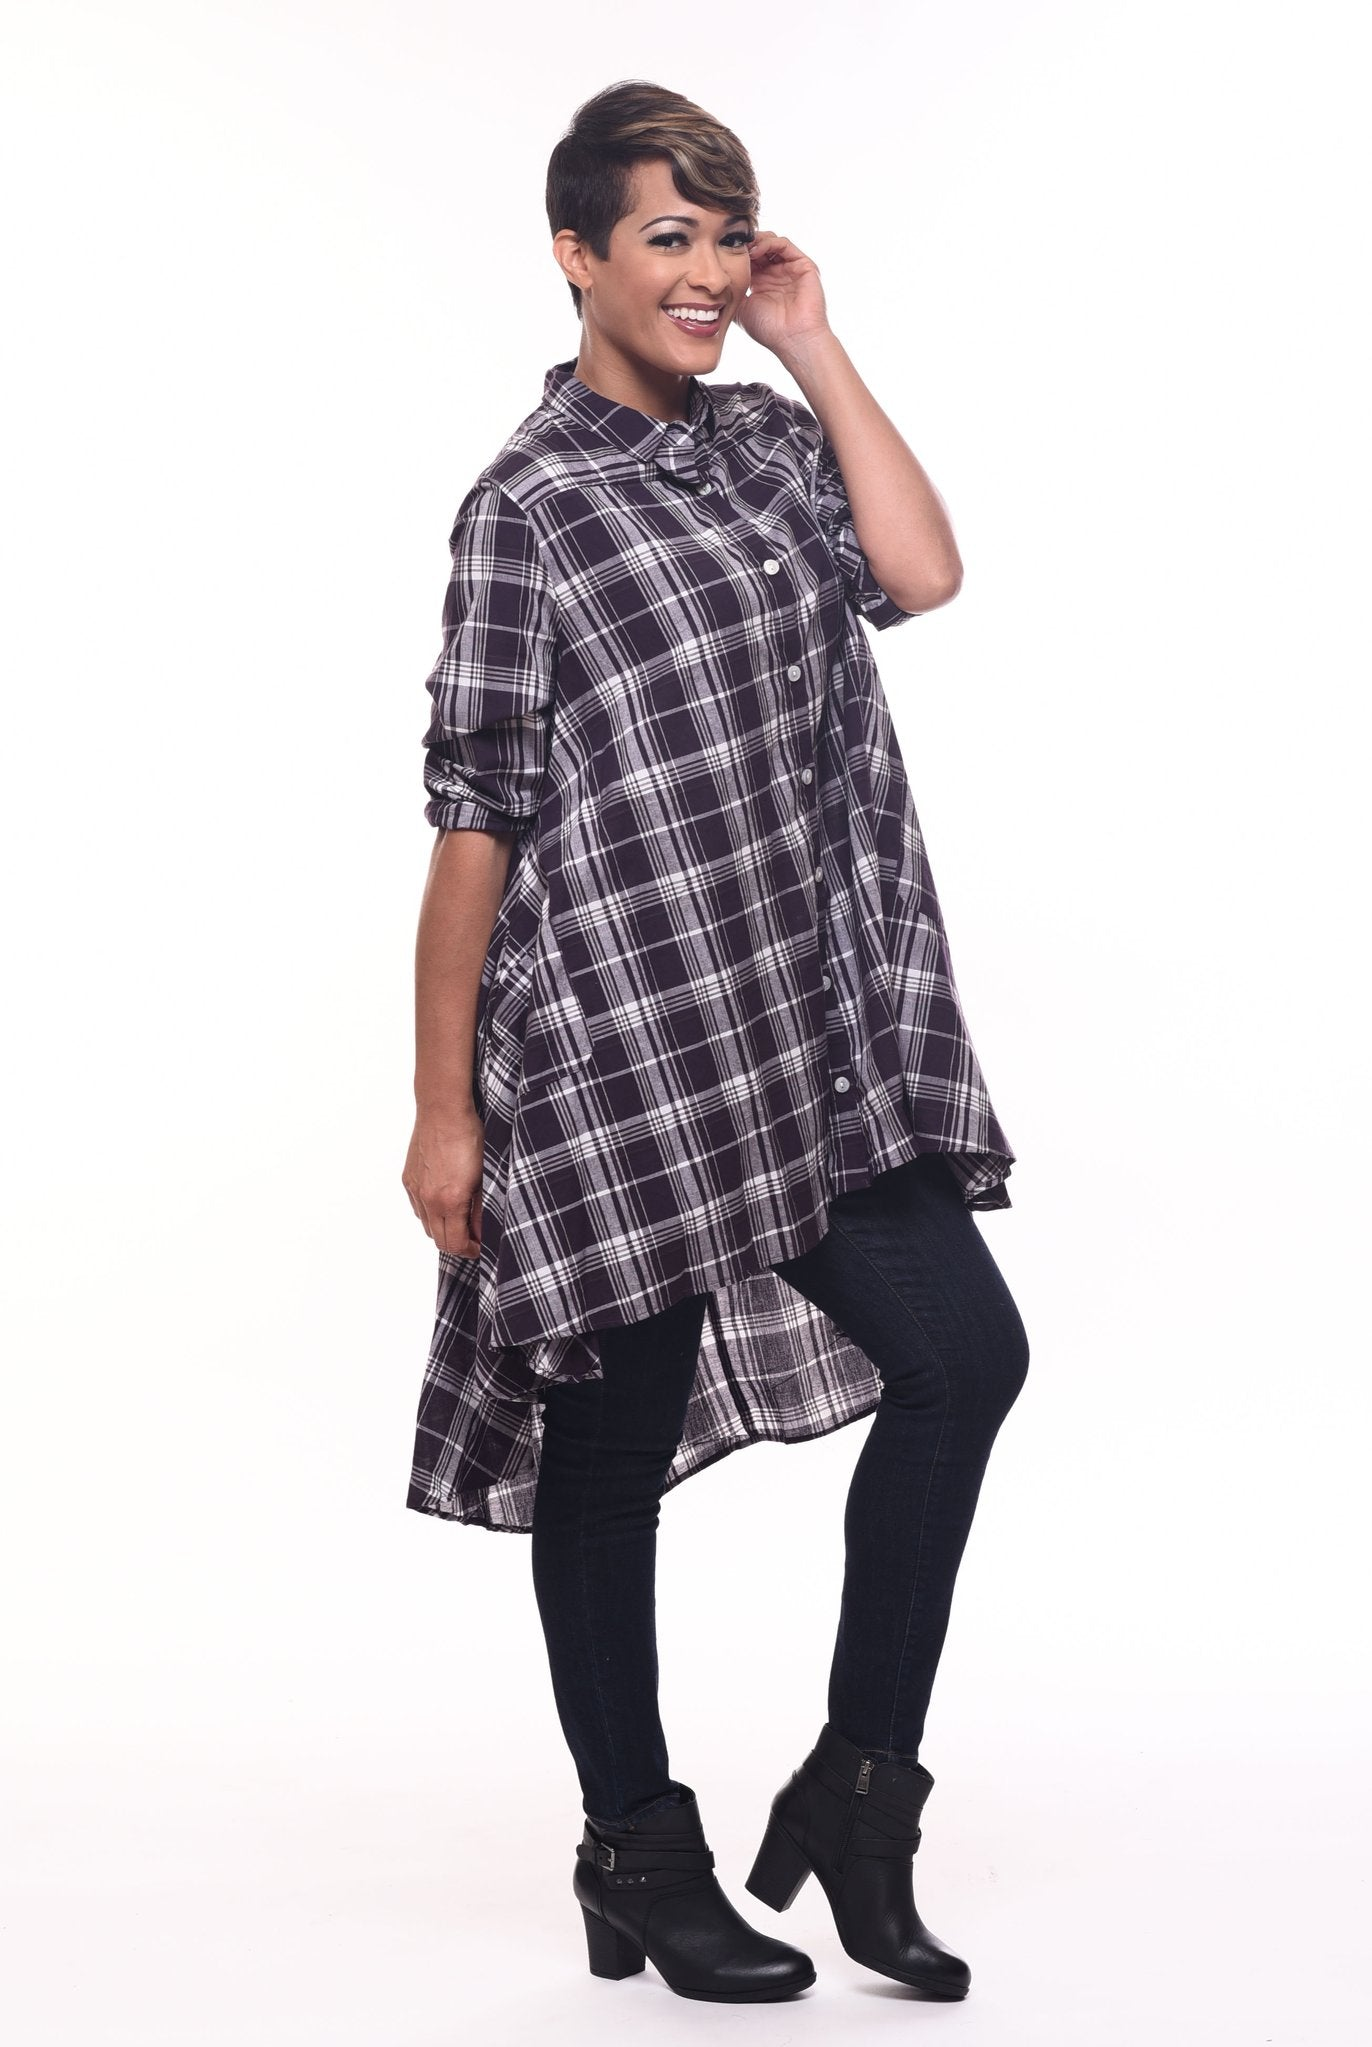 Tulip Plaid Cotton Shirt Lagenlook Boho Resort  XL Sml-2x